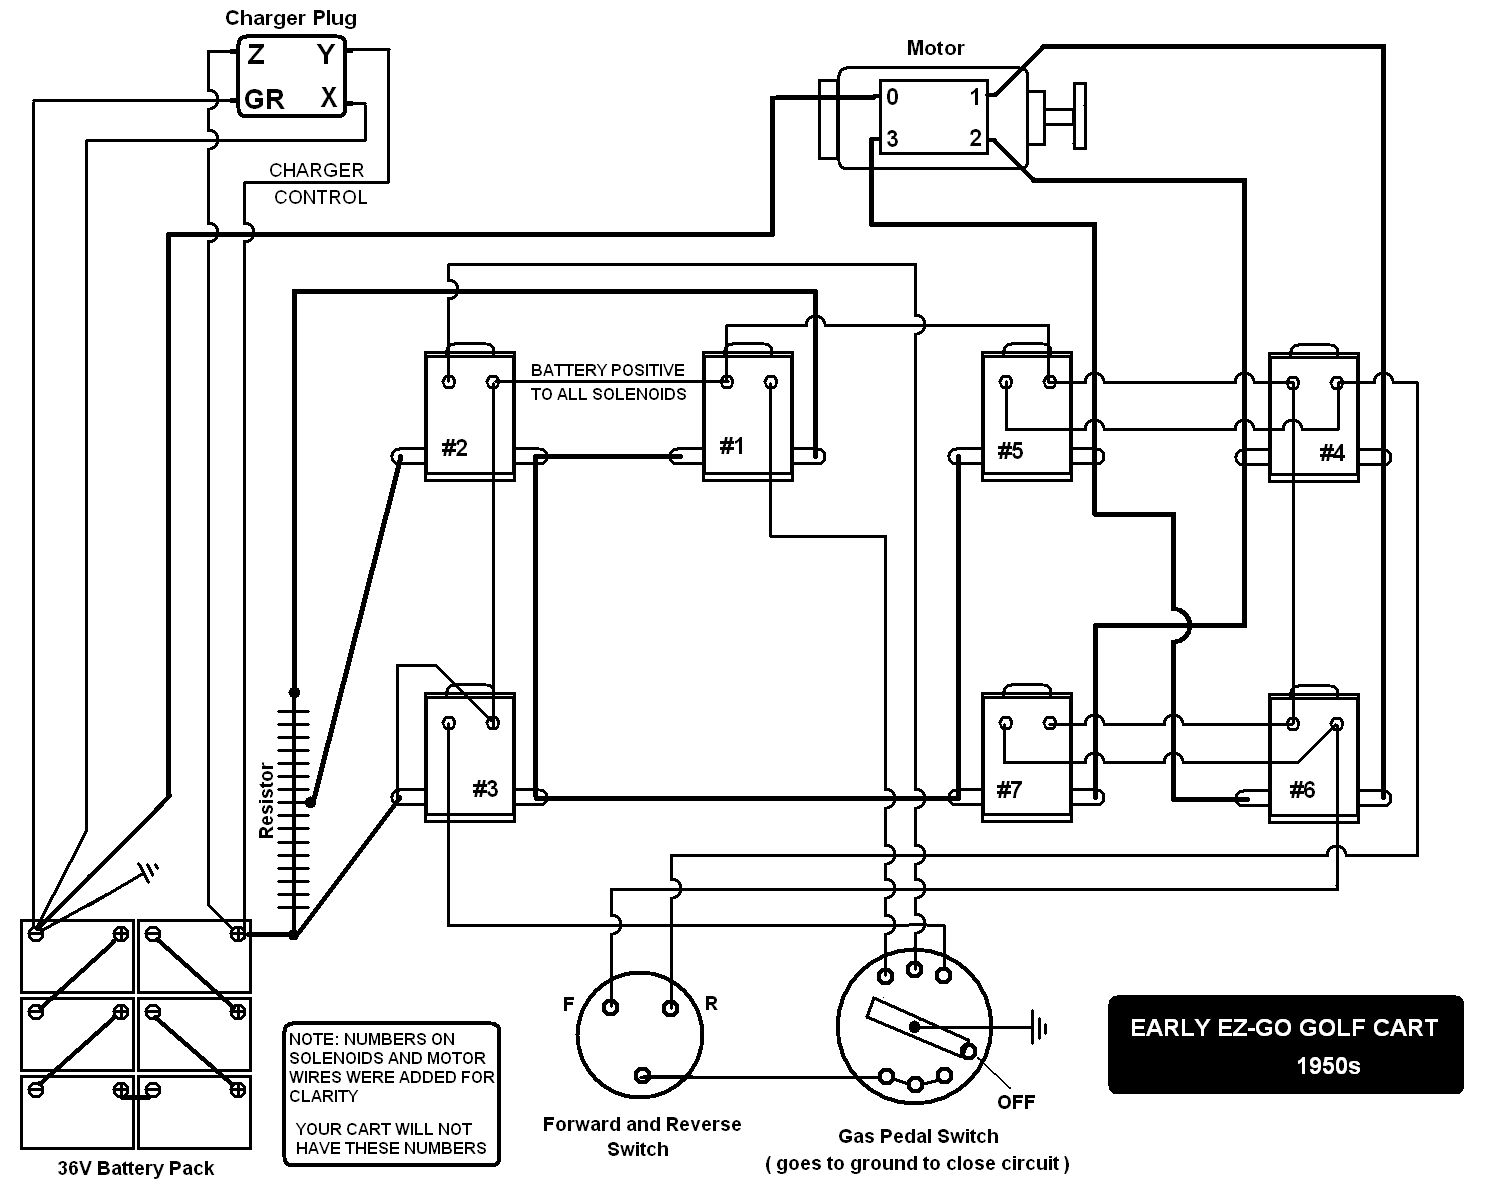 Columbia Par Car Wiring Diagram Simple Guide About 2005 48 Volt Ez Go Get Free Image 1988 1987